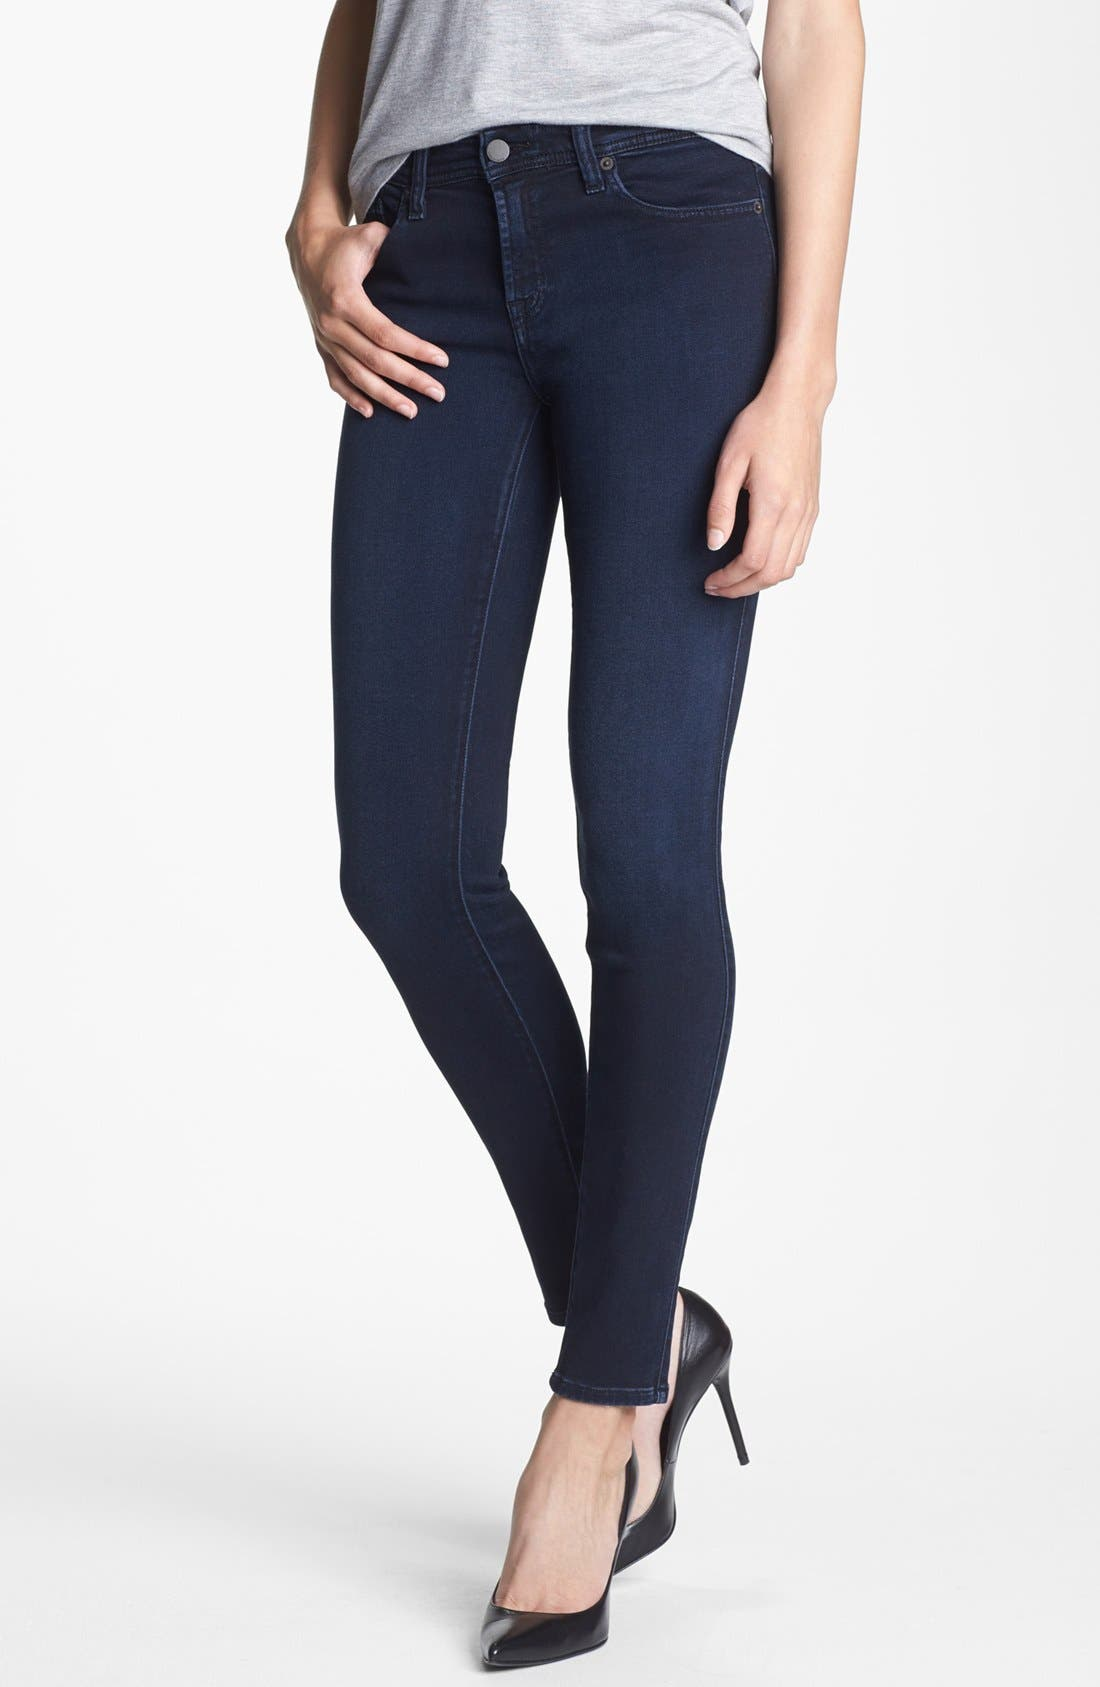 Alternate Image 1 Selected - Genetic 'The Stem' Mid Rise Skinny Jeans (Pop Blue)